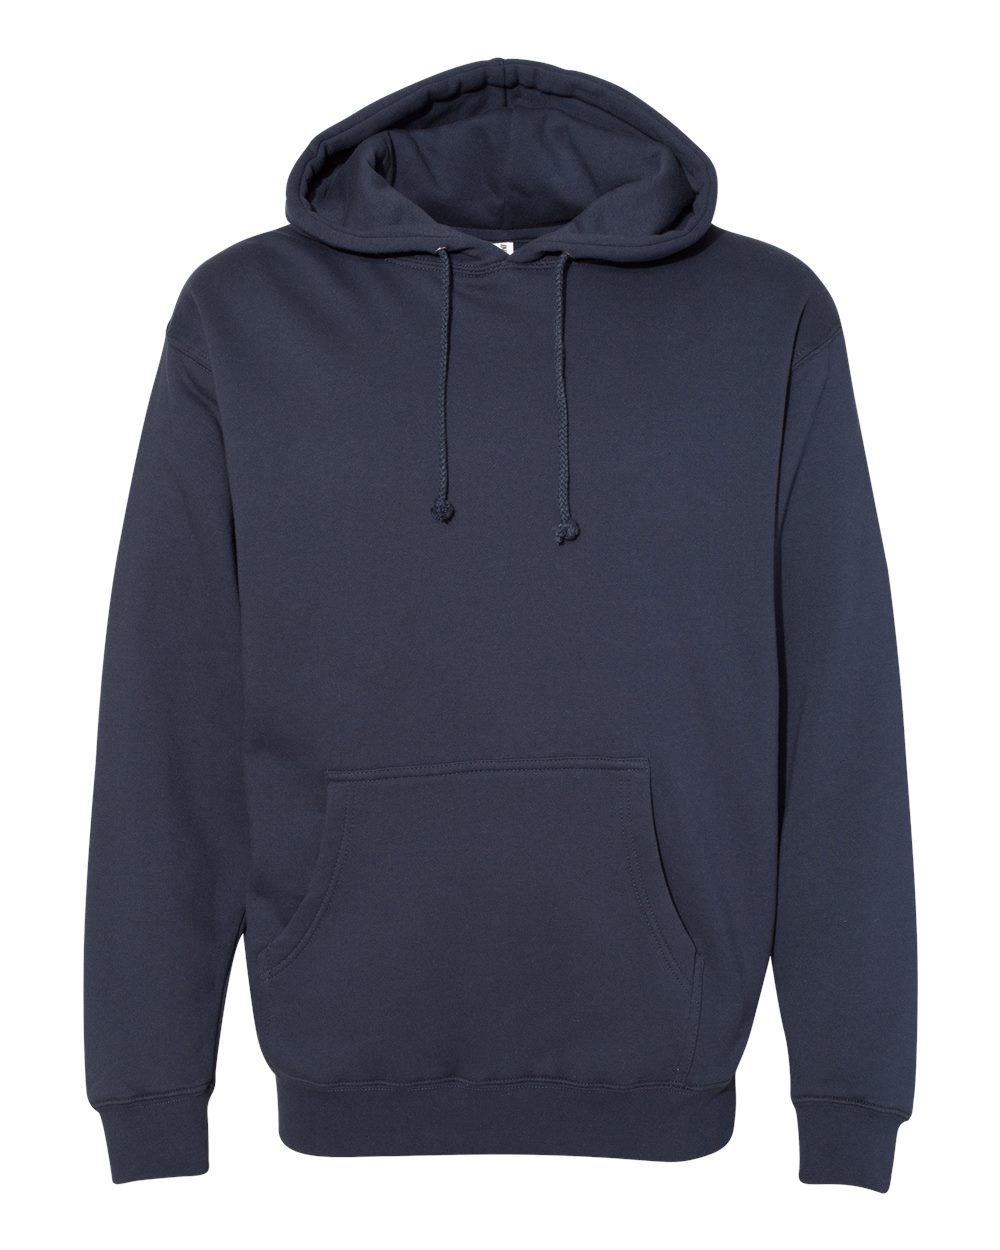 Independent-Trading-Co-Mens-Hooded-Pullover-Sweatshirt-IND4000-up-to-3XL miniature 78